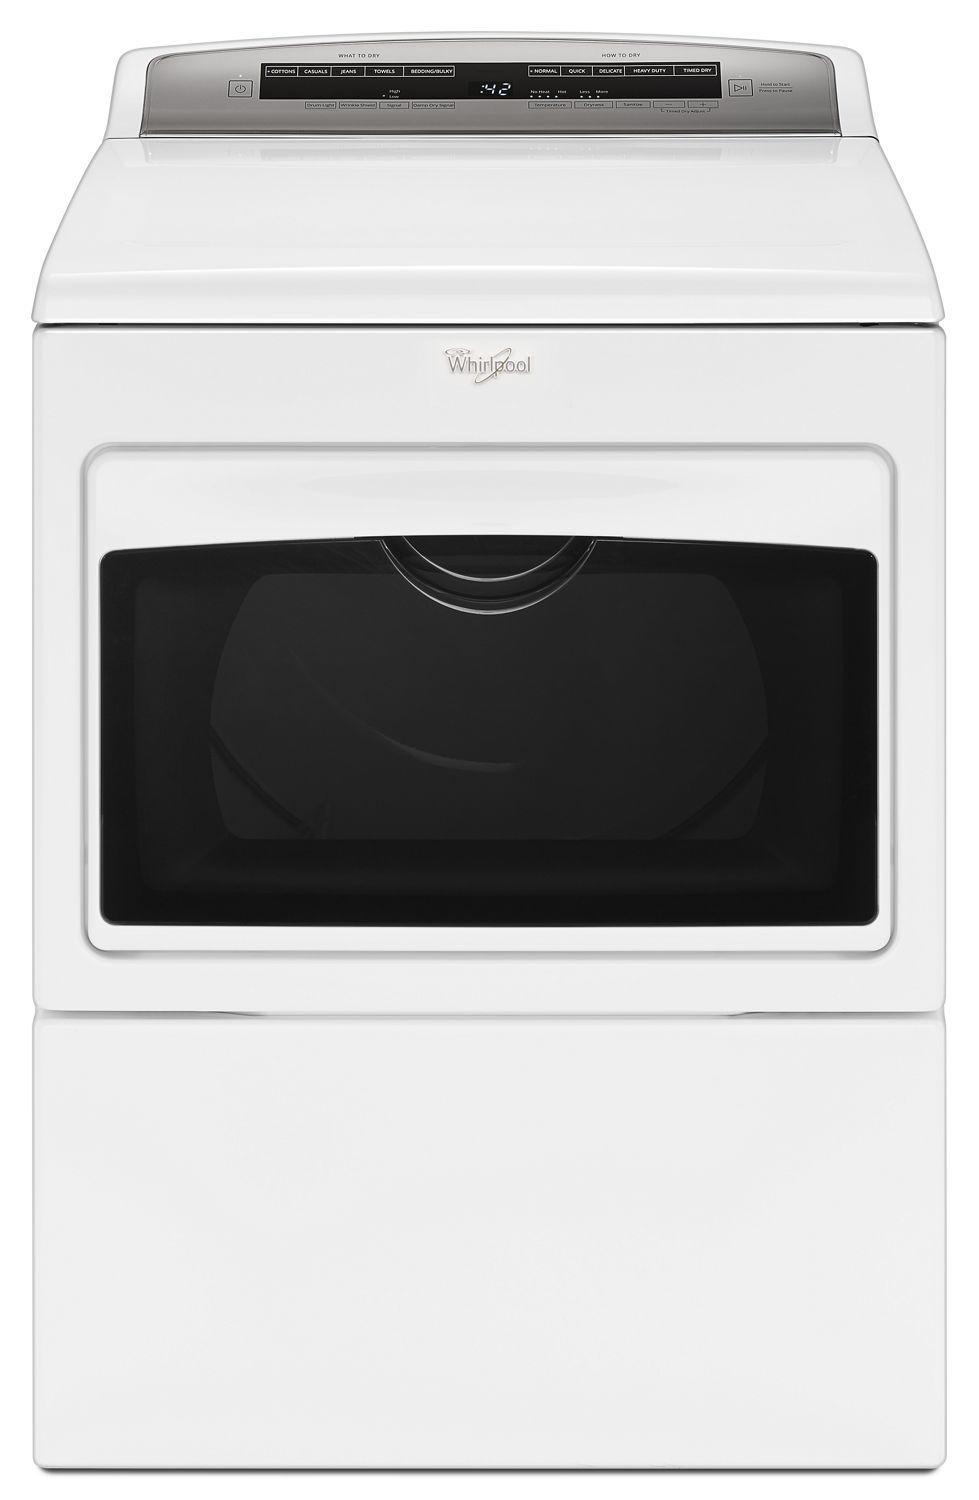 Whirlpool7.4 Cu. Ft. Top Load Electric Dryer With Accudry Sensor Drying Technology White